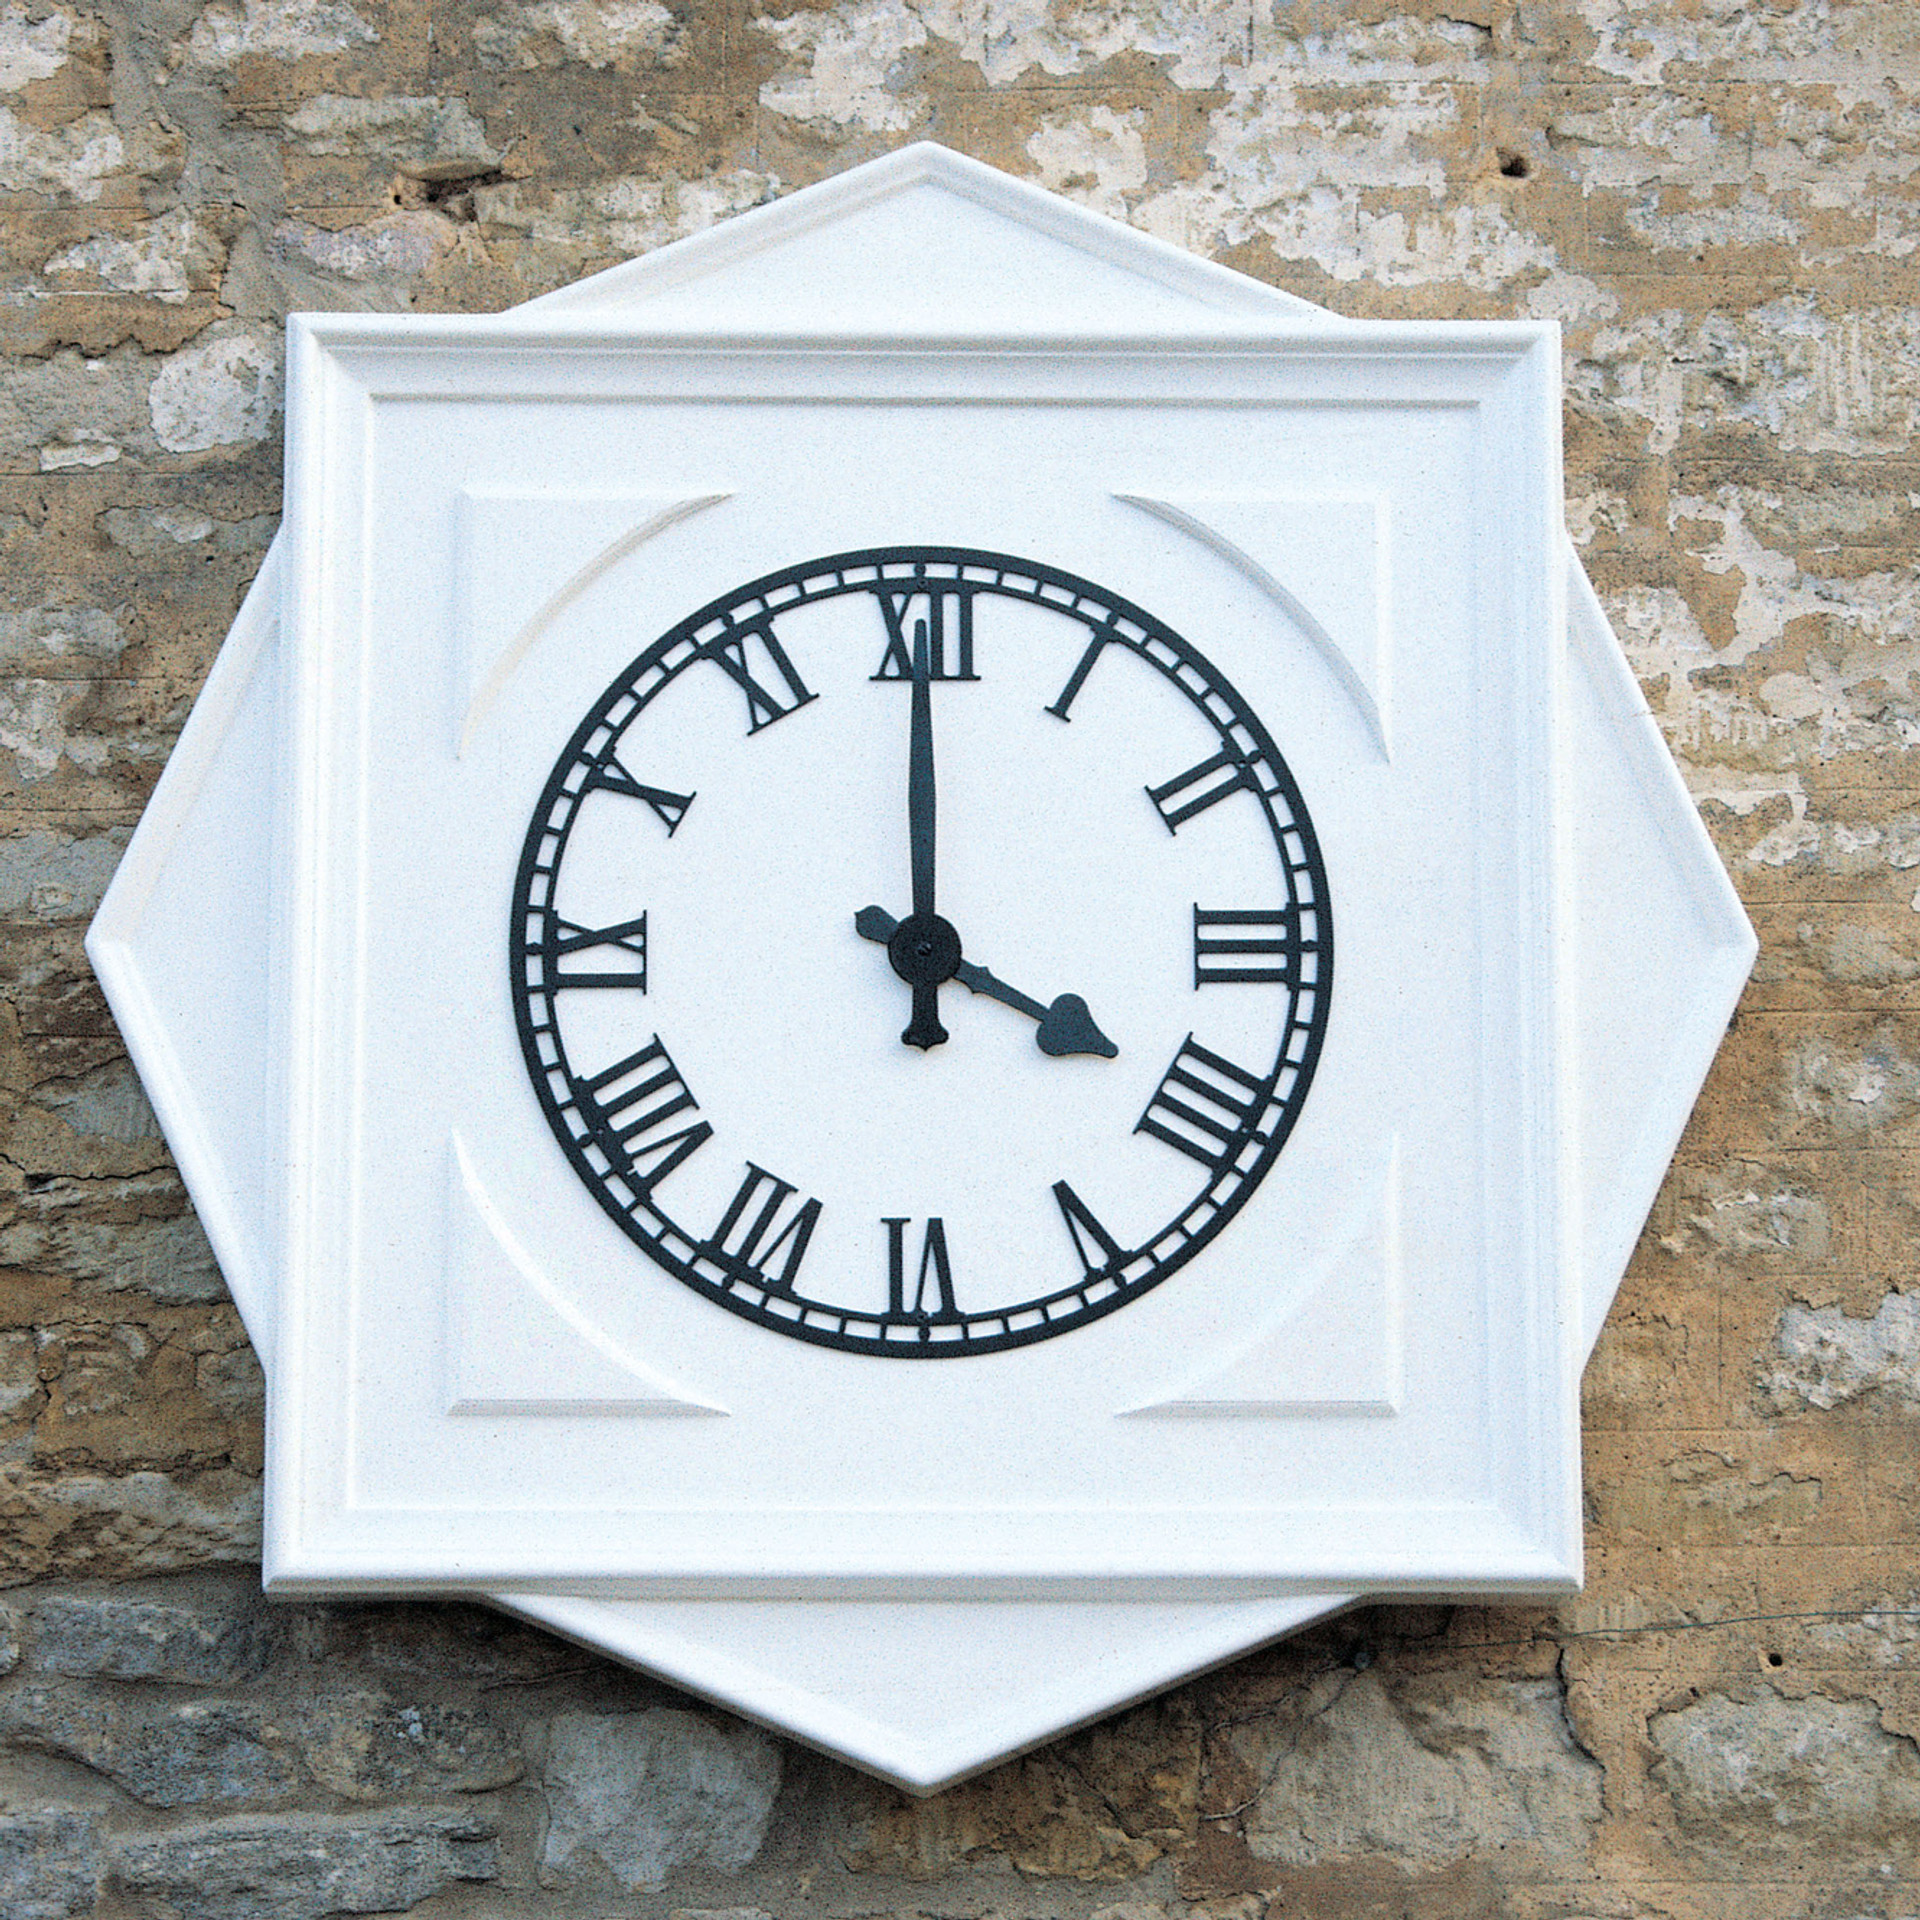 Star shaped plinth with clock